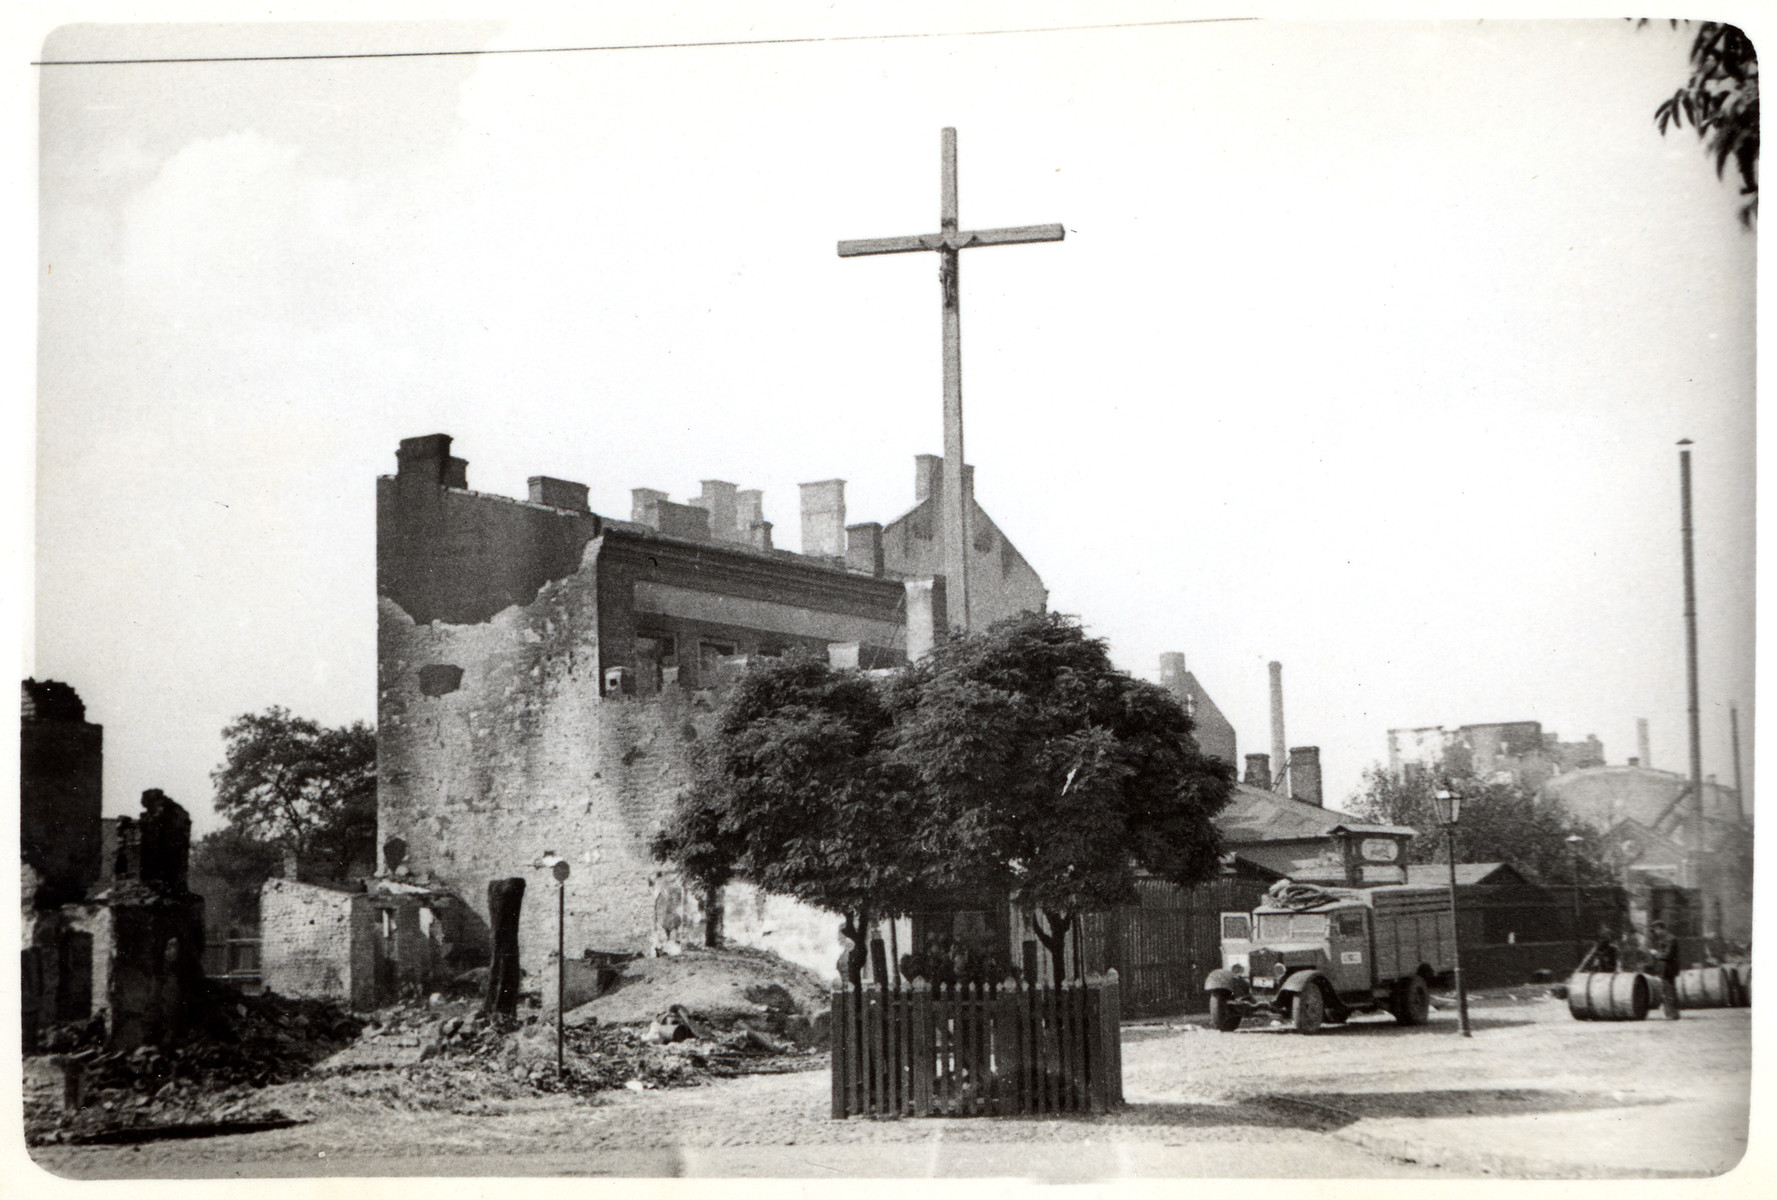 The ruins of a bombed-out church in besieged Warsaw.